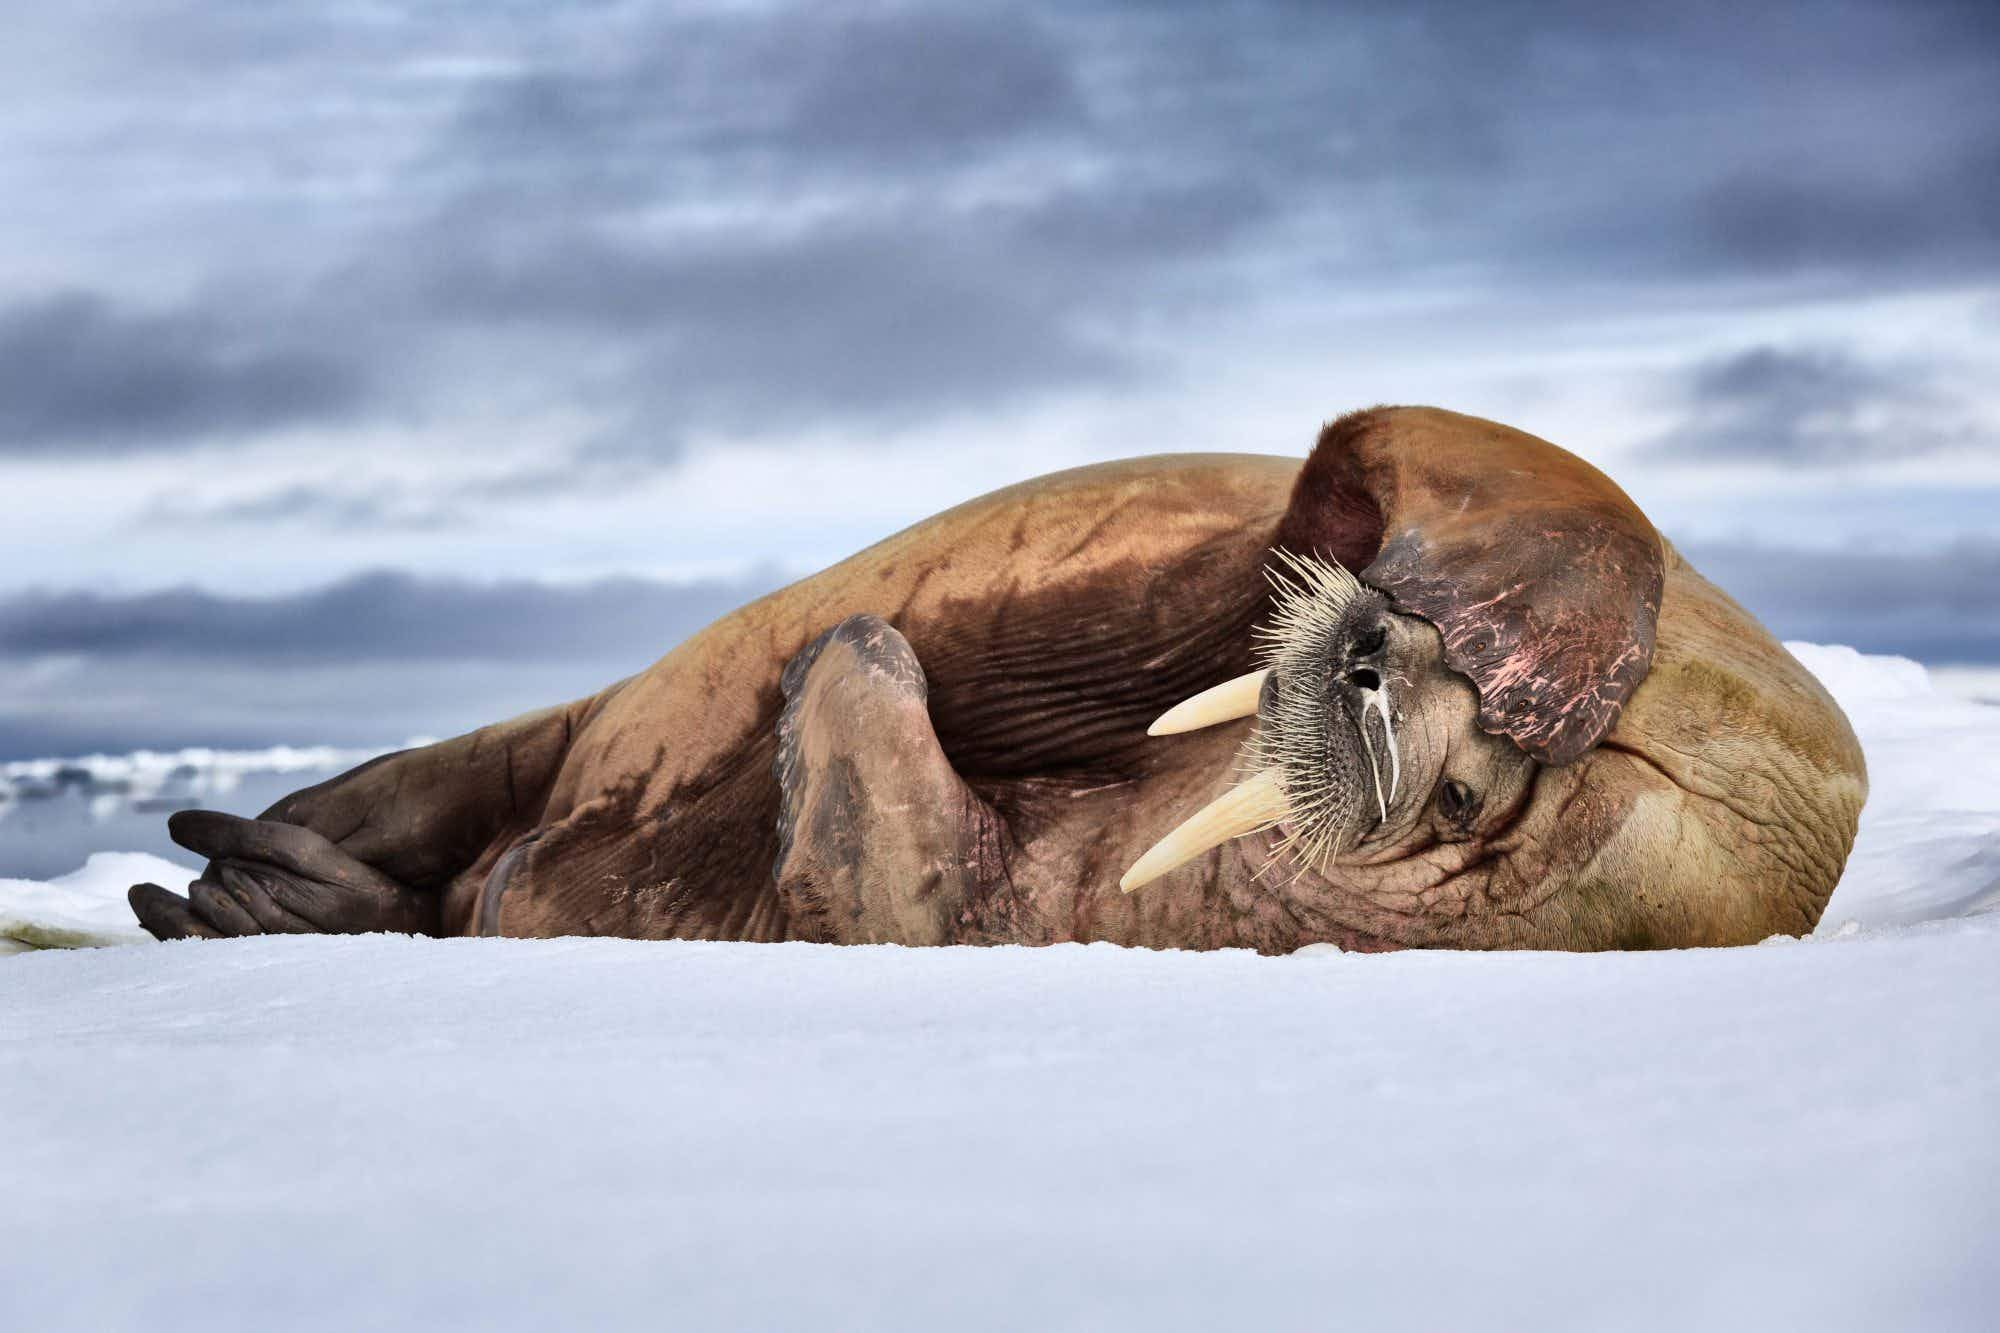 Meanwhile in Norway, this sleepy walrus has had quite enough for one day